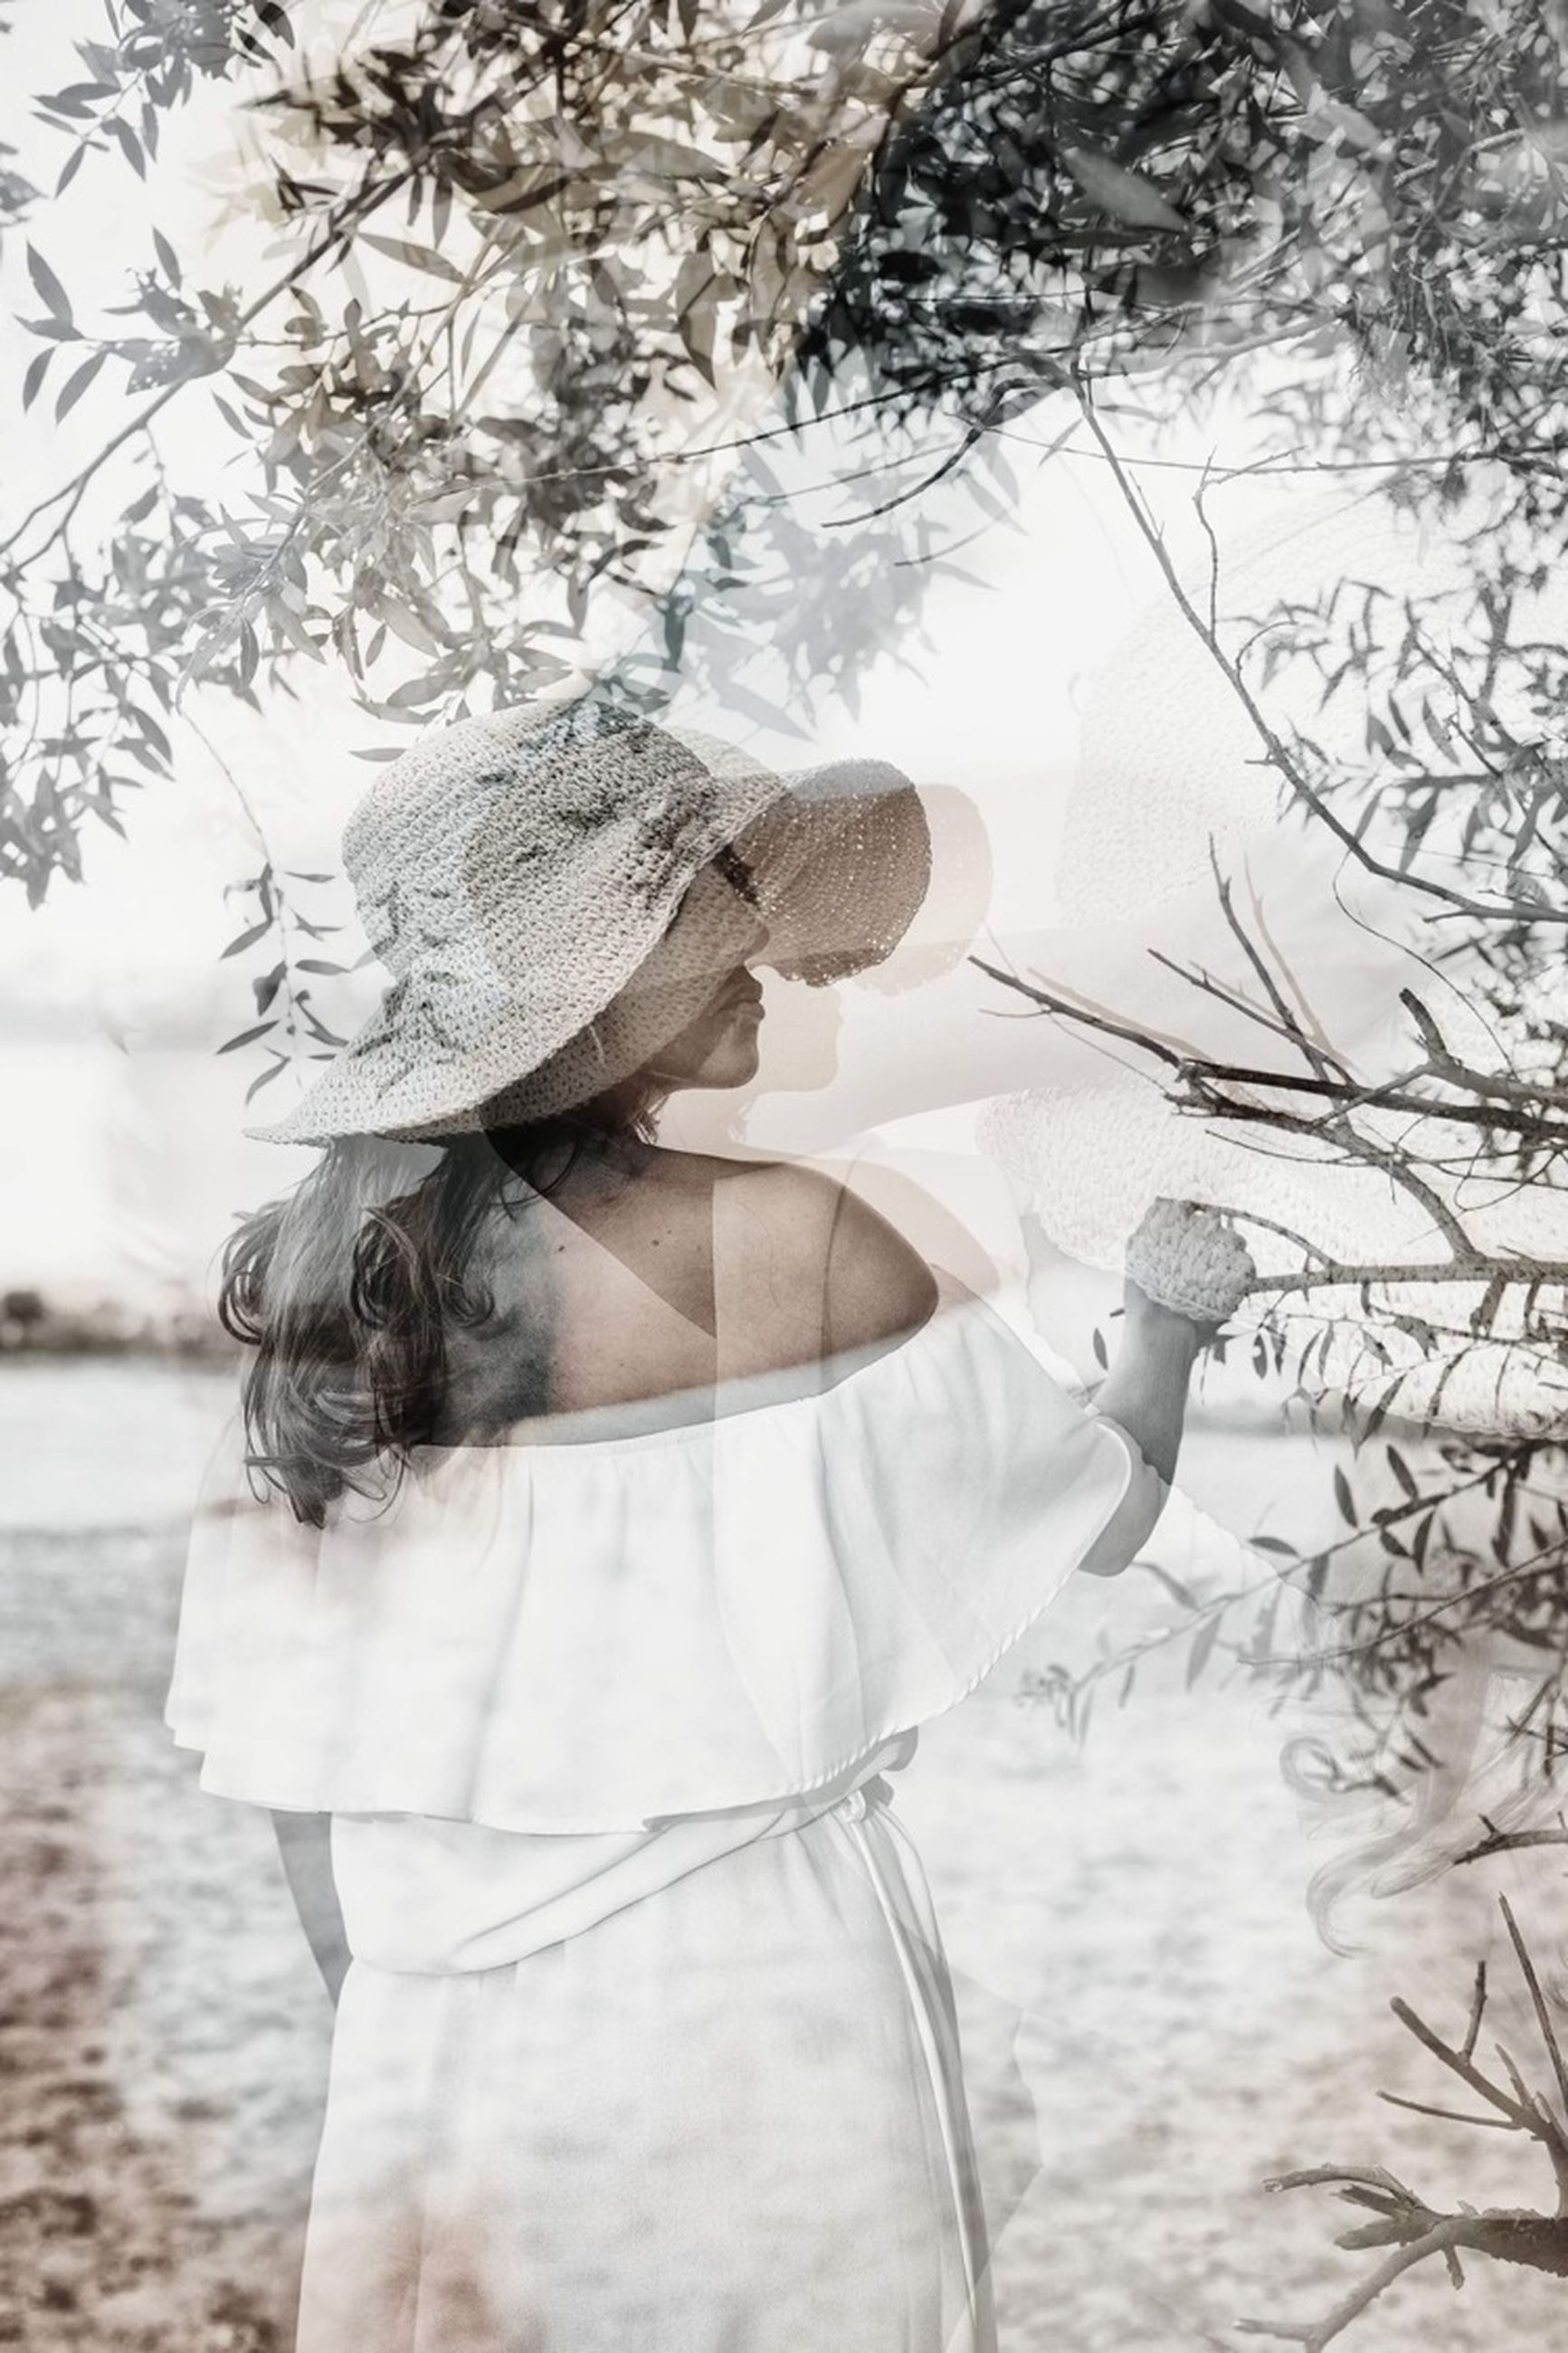 one person, clothing, women, tree, dress, spring, adult, nature, plant, winter, hat, white, young adult, fashion, day, water, three quarter length, bride, wedding dress, fashion accessory, outdoors, standing, female, land, hairstyle, long hair, lifestyles, leisure activity, sketch, branch, rear view, person, tranquility, looking, portrait